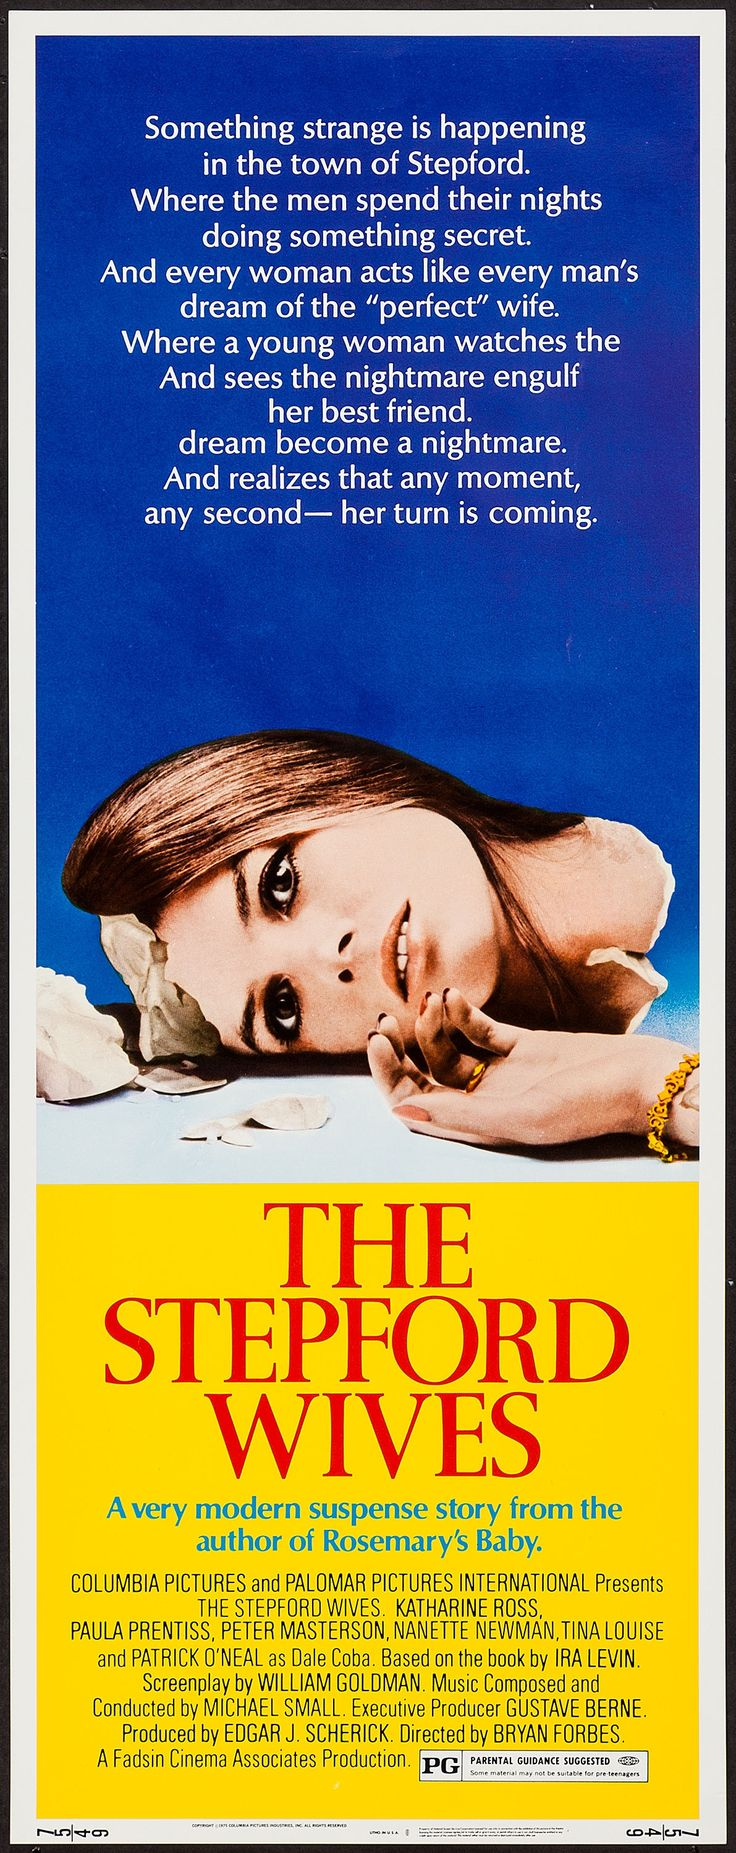 the stepford wives 2 essay In 1975, when the movie the stepford wives first came out, it was widely  regarded as a chilling parable about men's fears of feminism, a tale of.